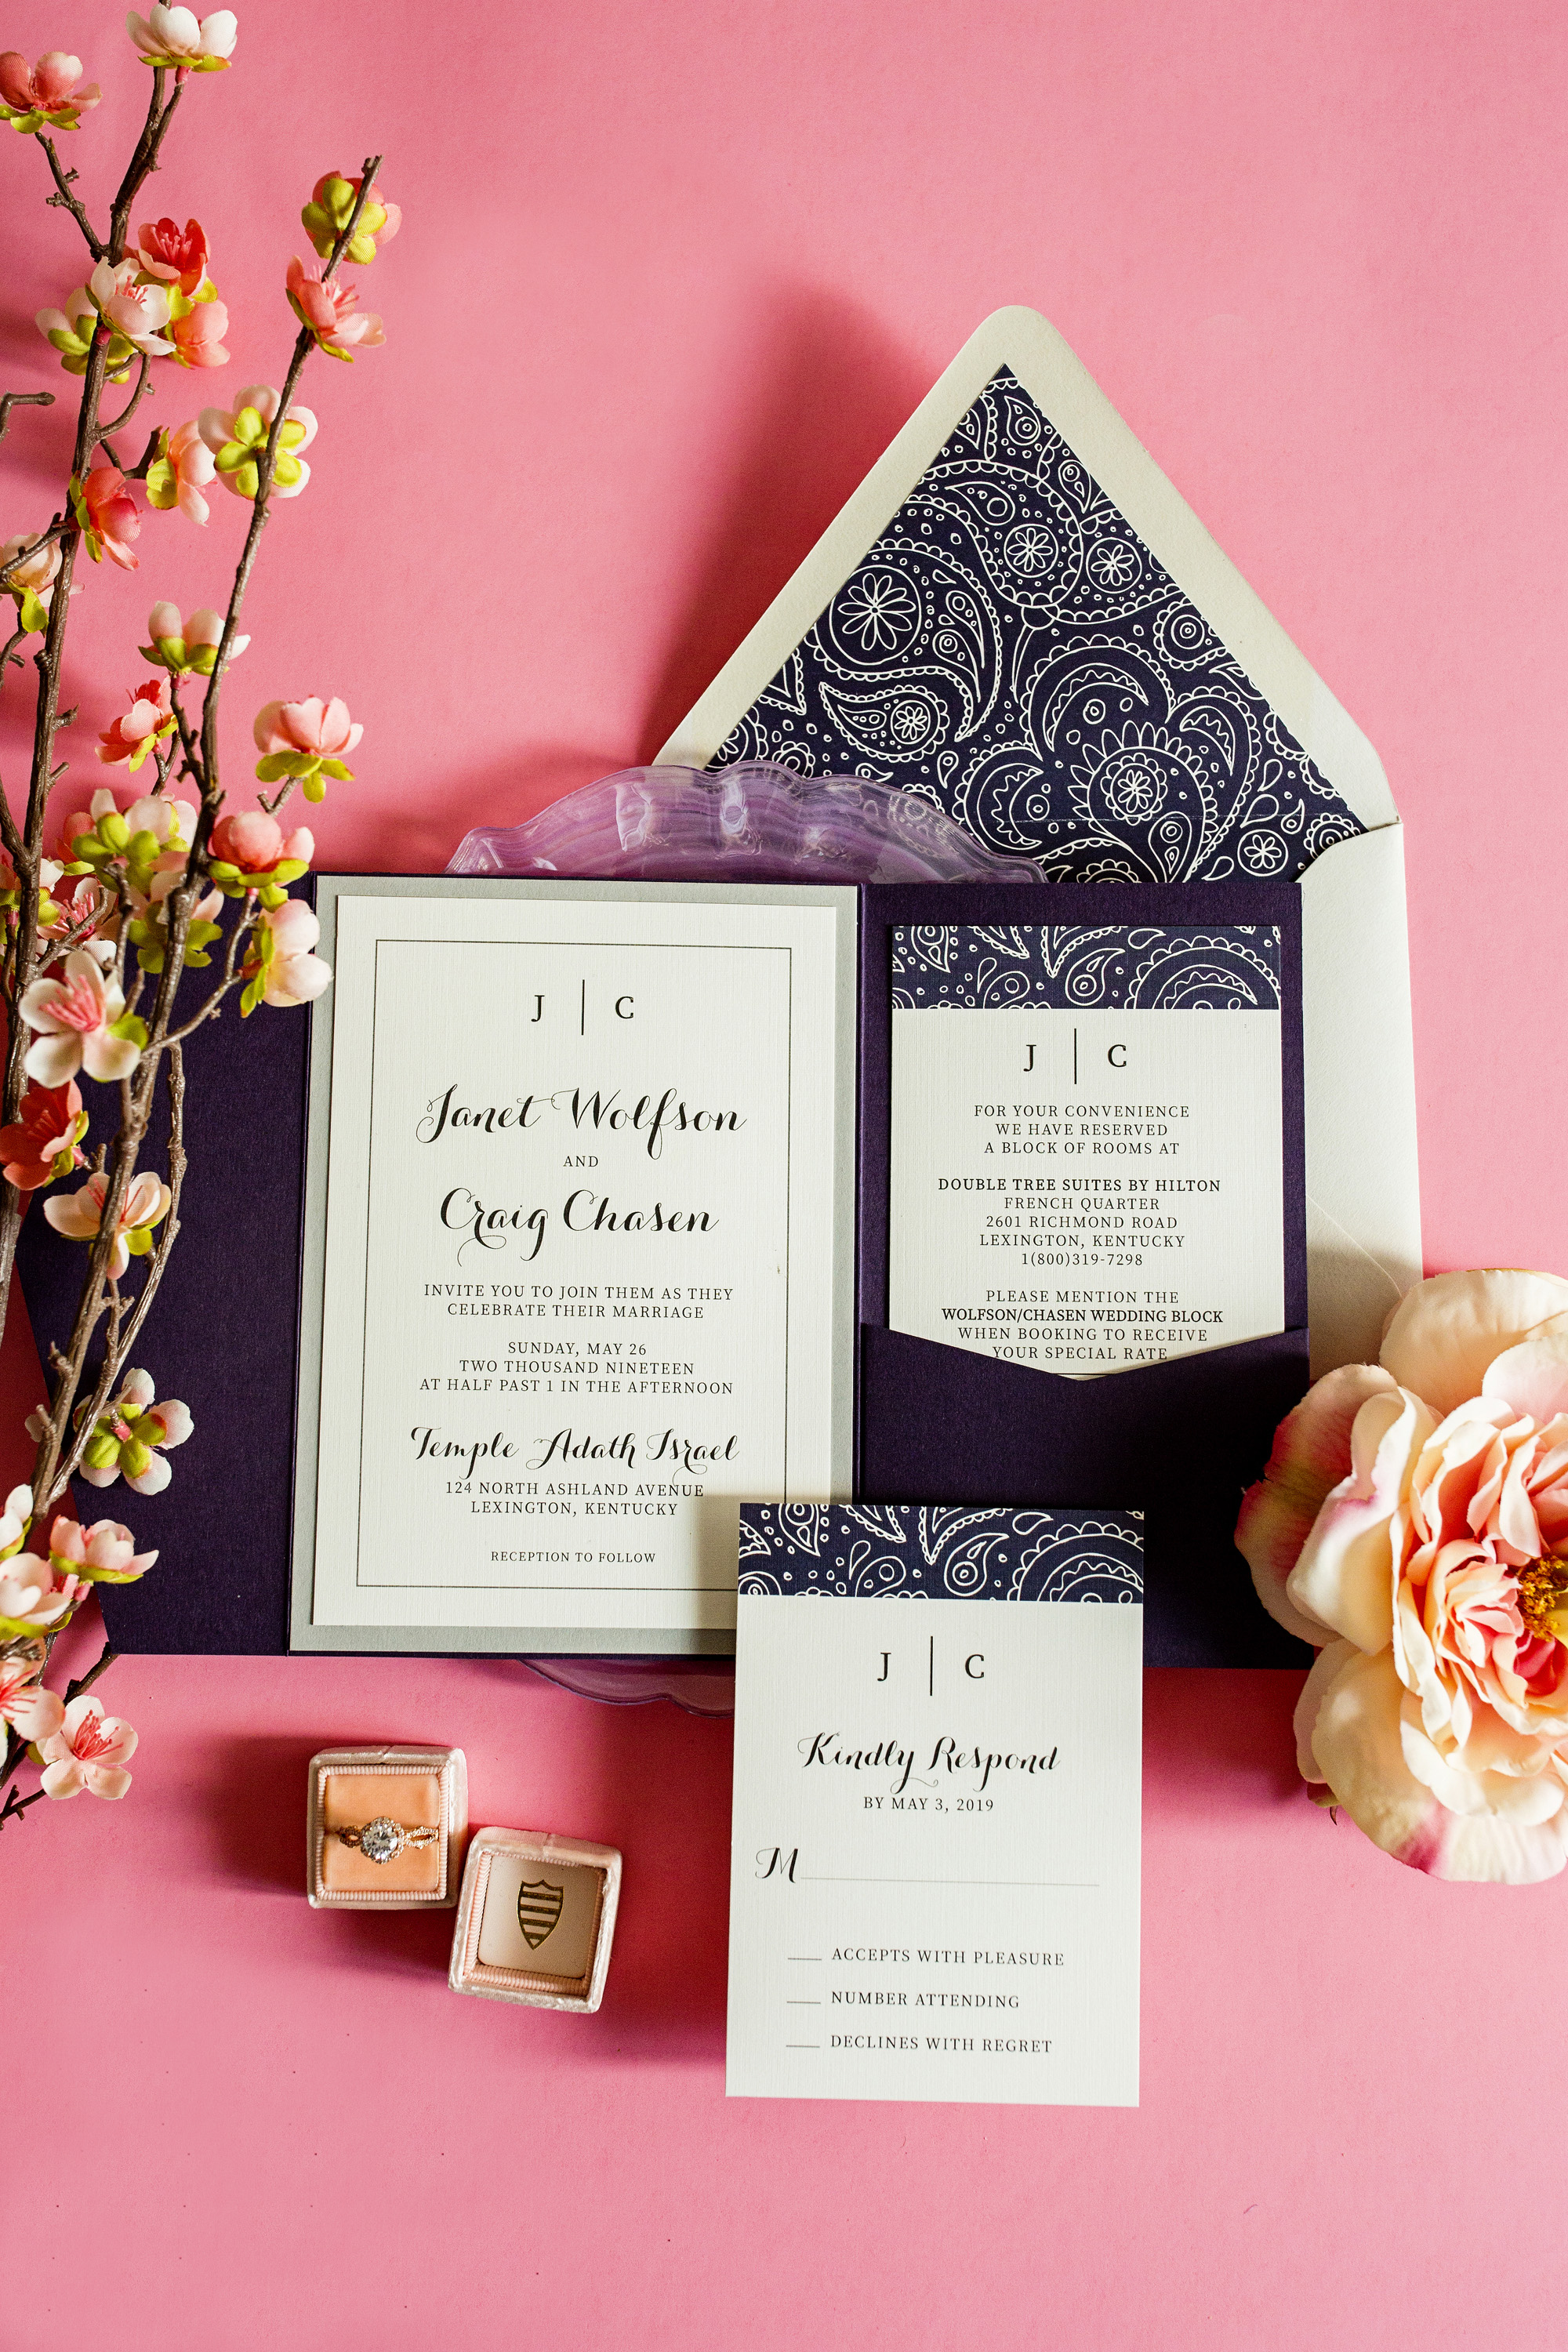 Seriously_Sabrina_Photography_Commercial_Simply_Done_Invites_2019_March_139